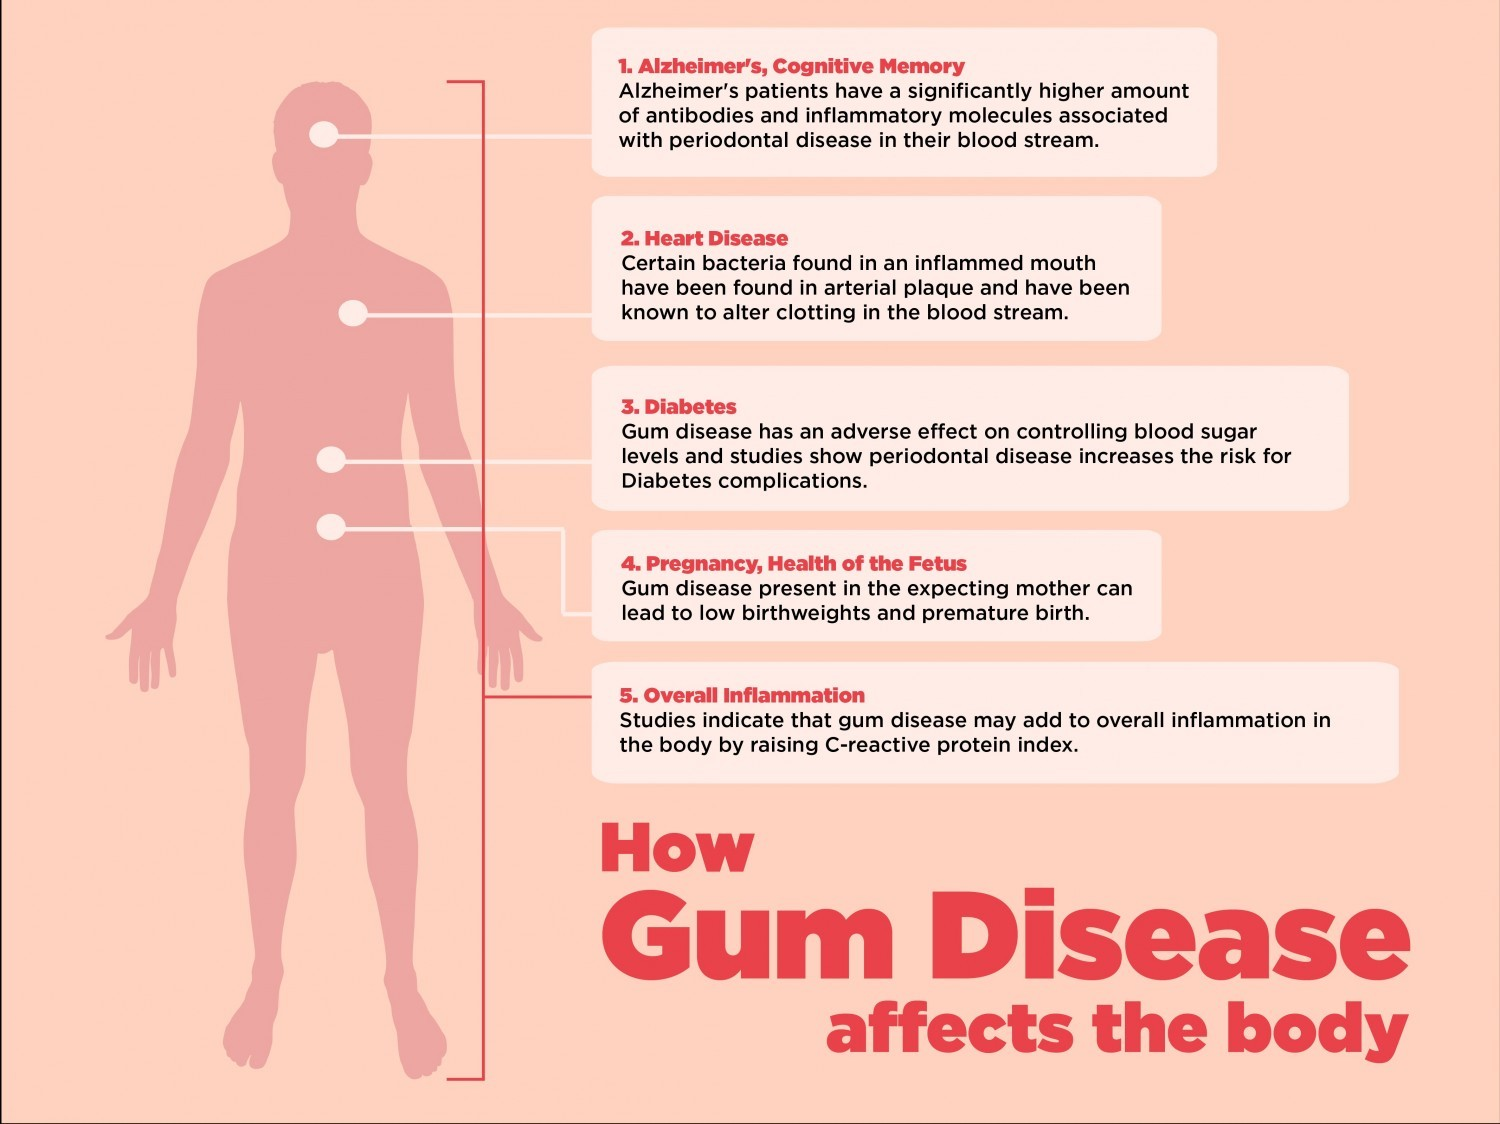 Myth: Periodontal (Gum) Disease Affects Only the Mouth.